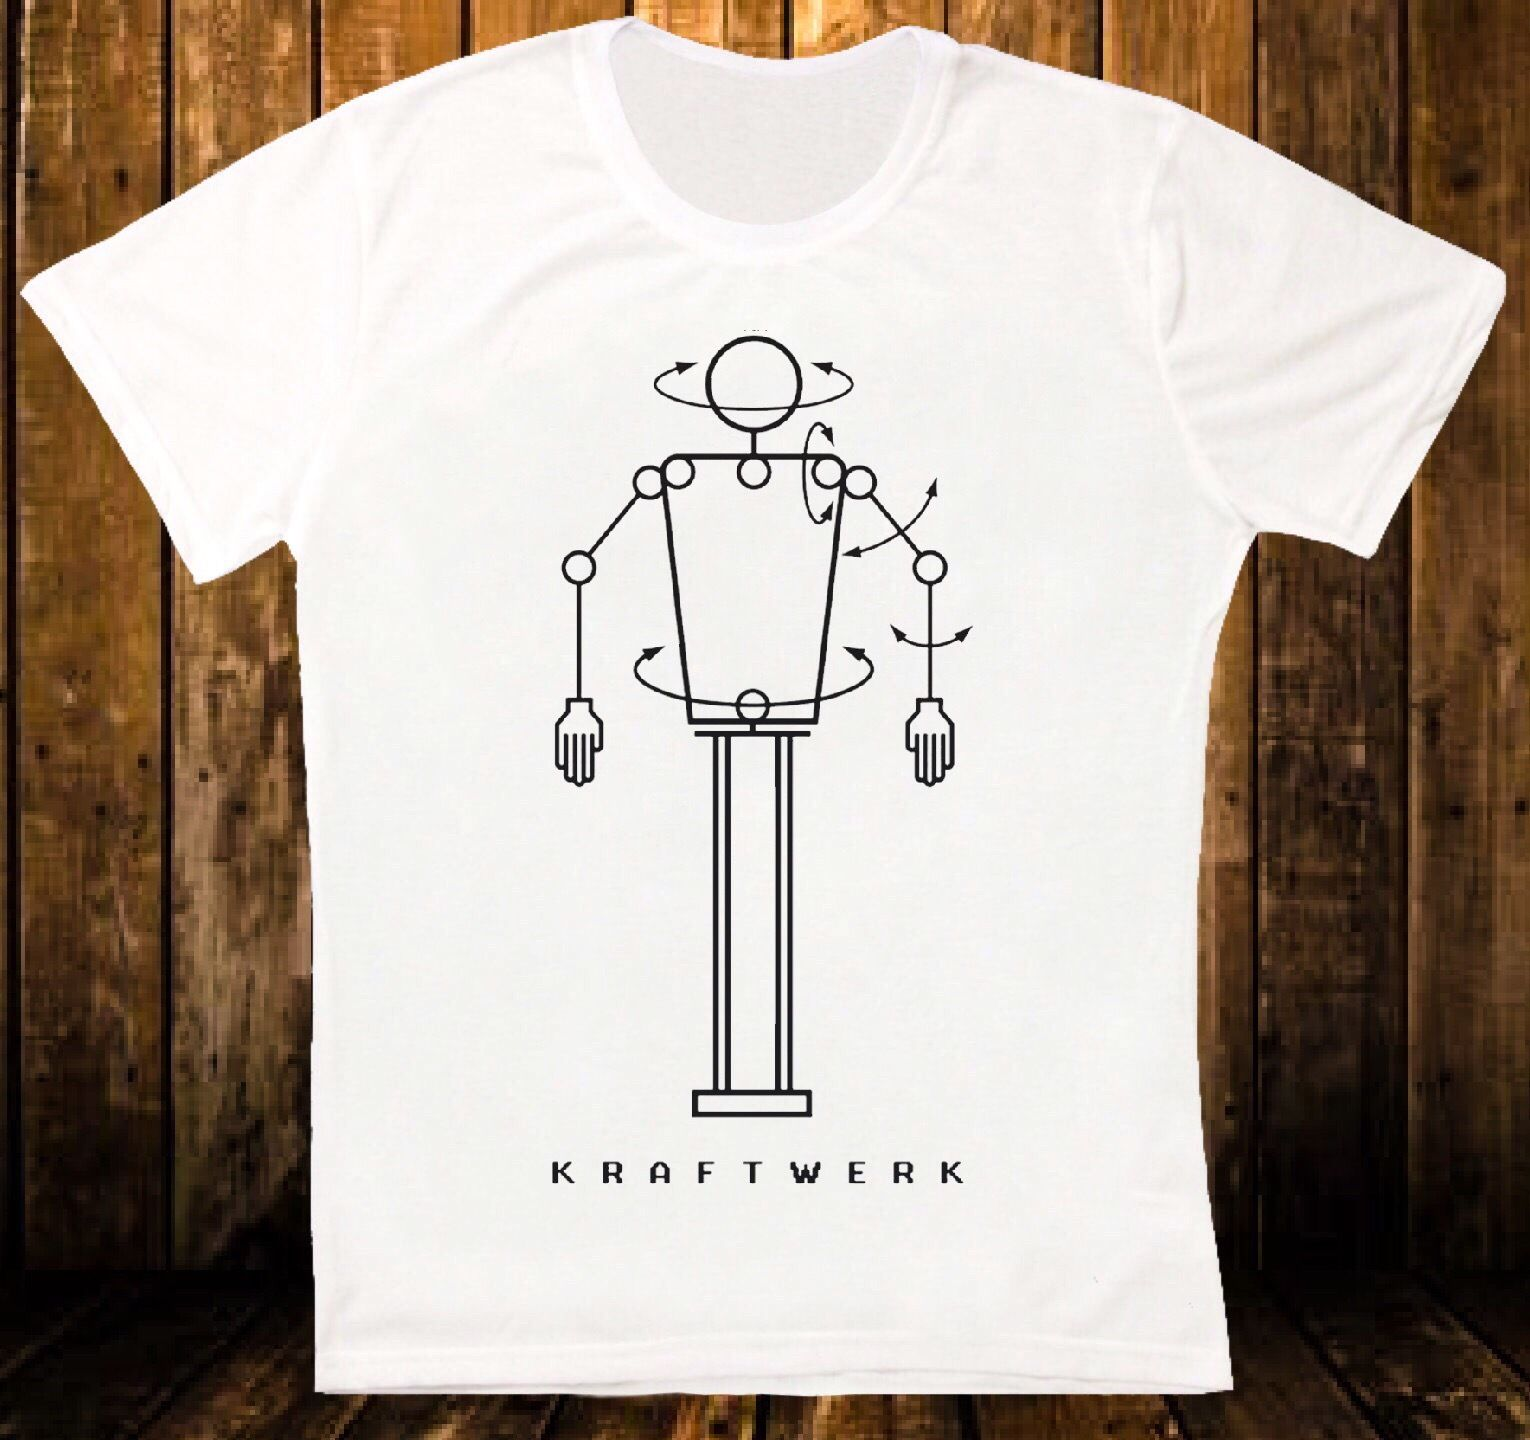 KRAFTWERK ROBOT ELECTRONIC SYNTH POP RETRO VINTAGE HIPSTER UNISEX T SHIRT 869 100 % Cotton T Shirt For Boy Novelty